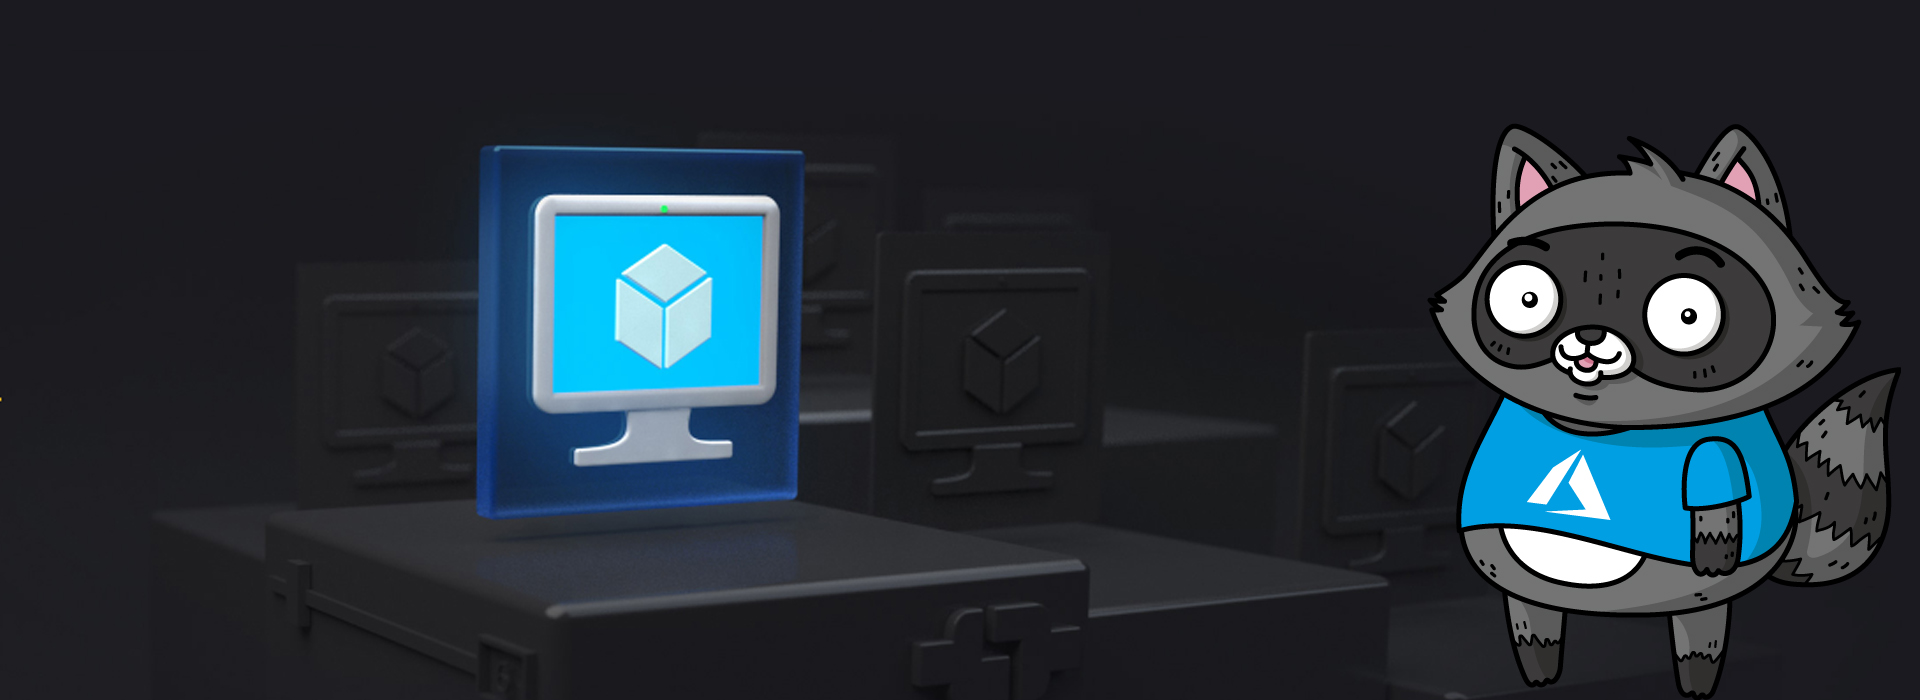 A 3D render of a computer screen displaying an object representing virtual machines, with a picture of Bit the Raccoon on the right.